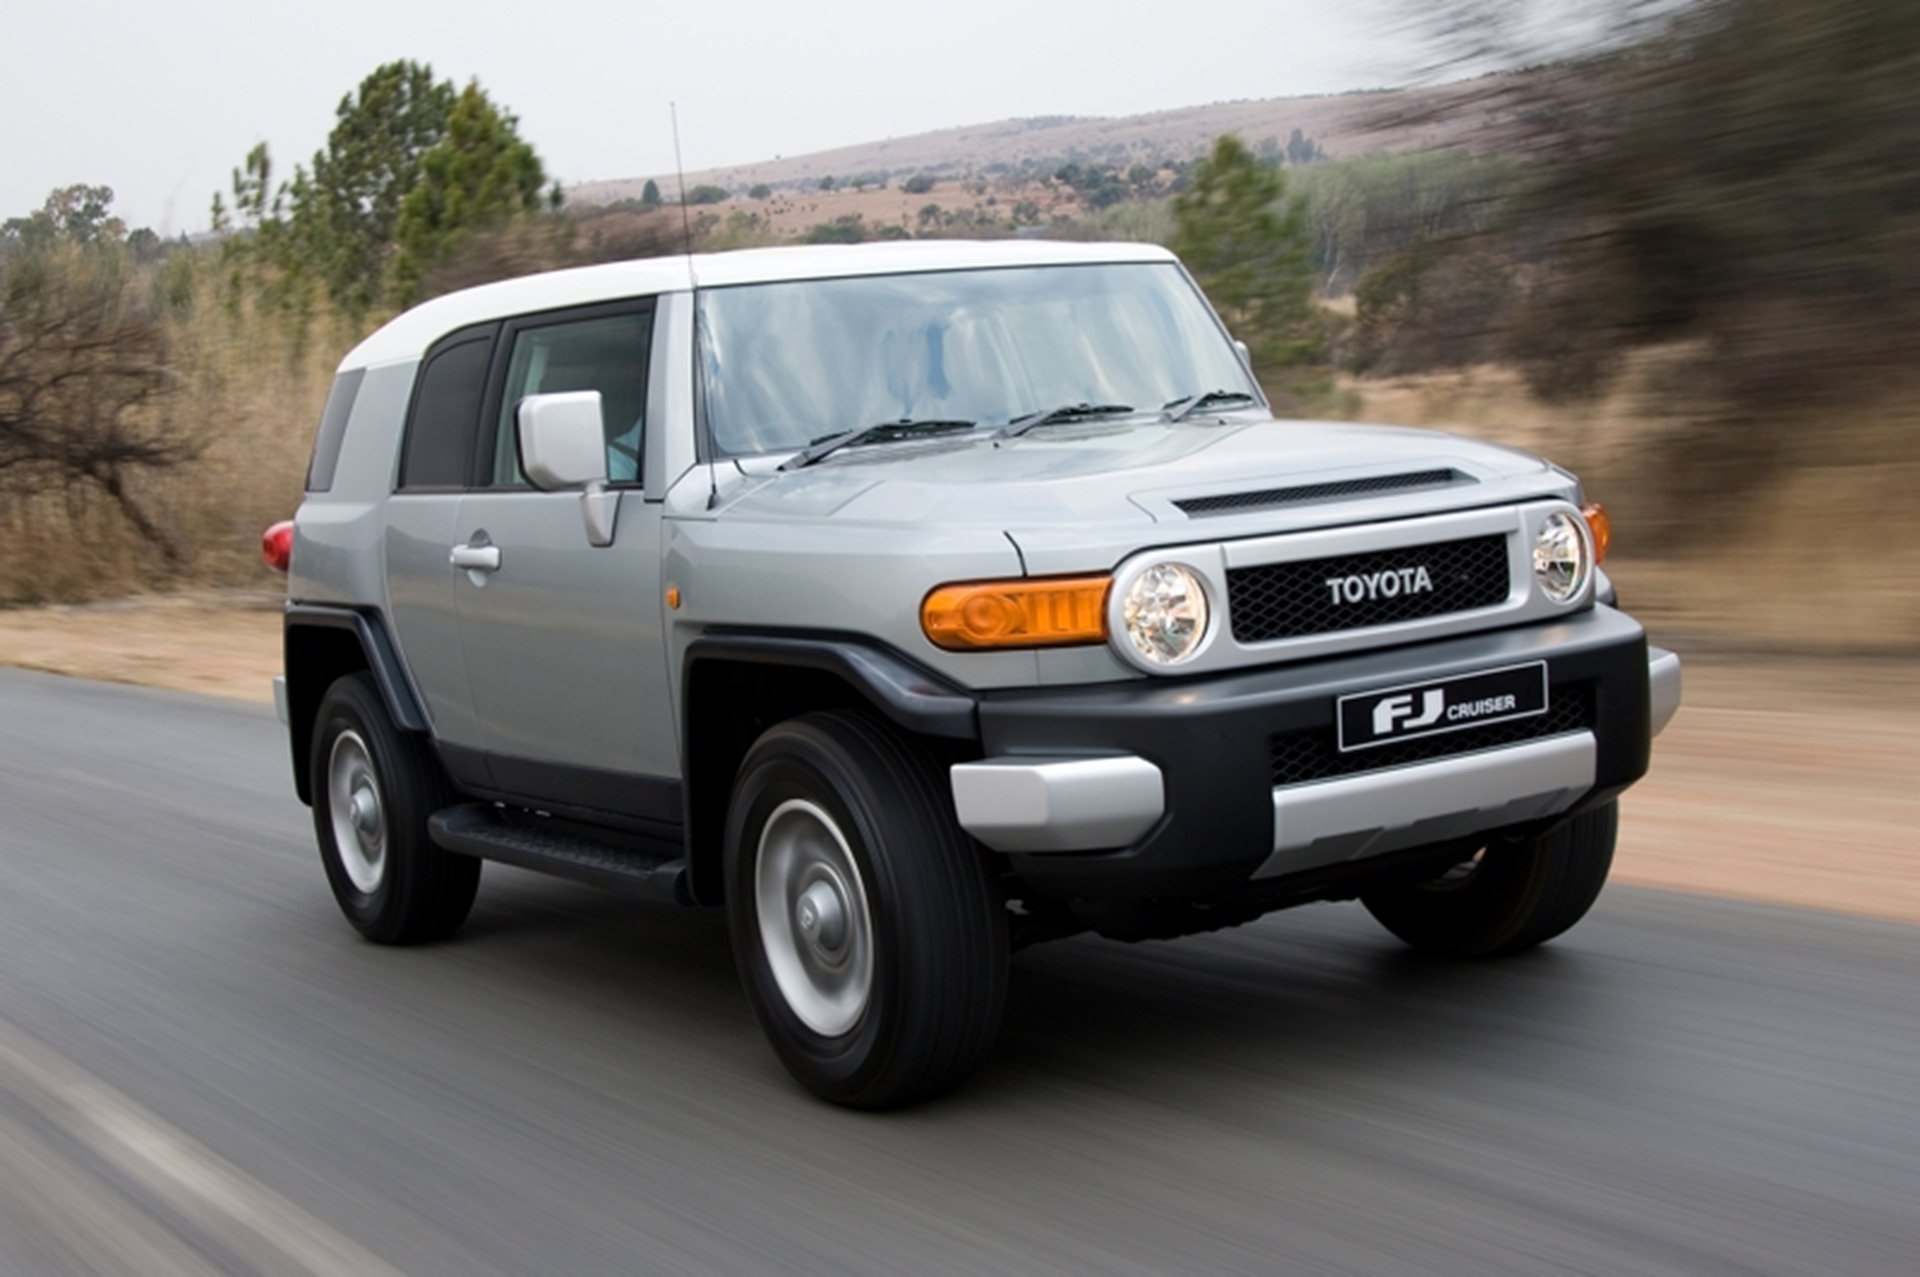 FJ Cruiser 2011 on the road